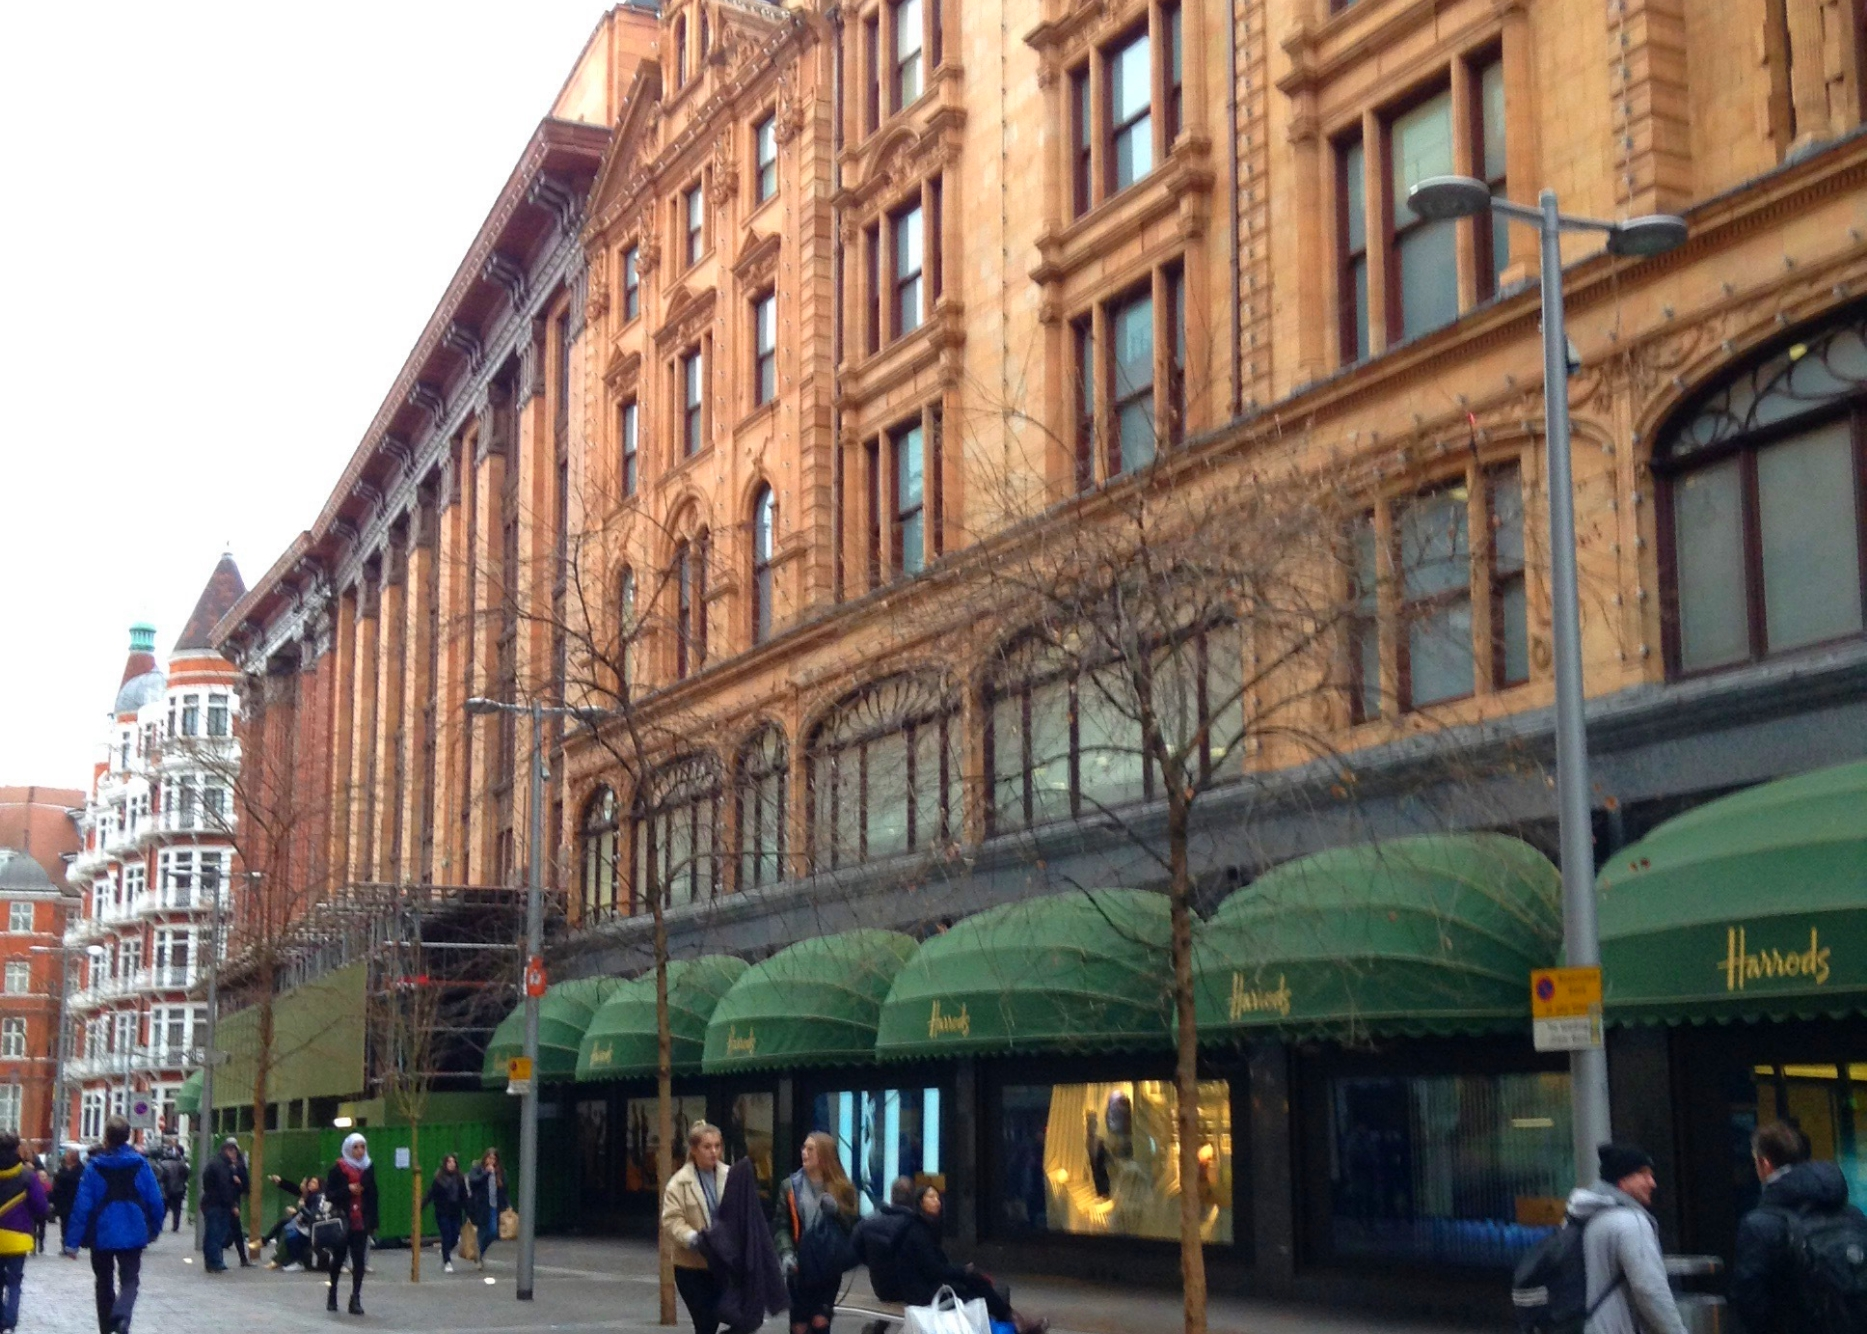 The Side entry to Harrods